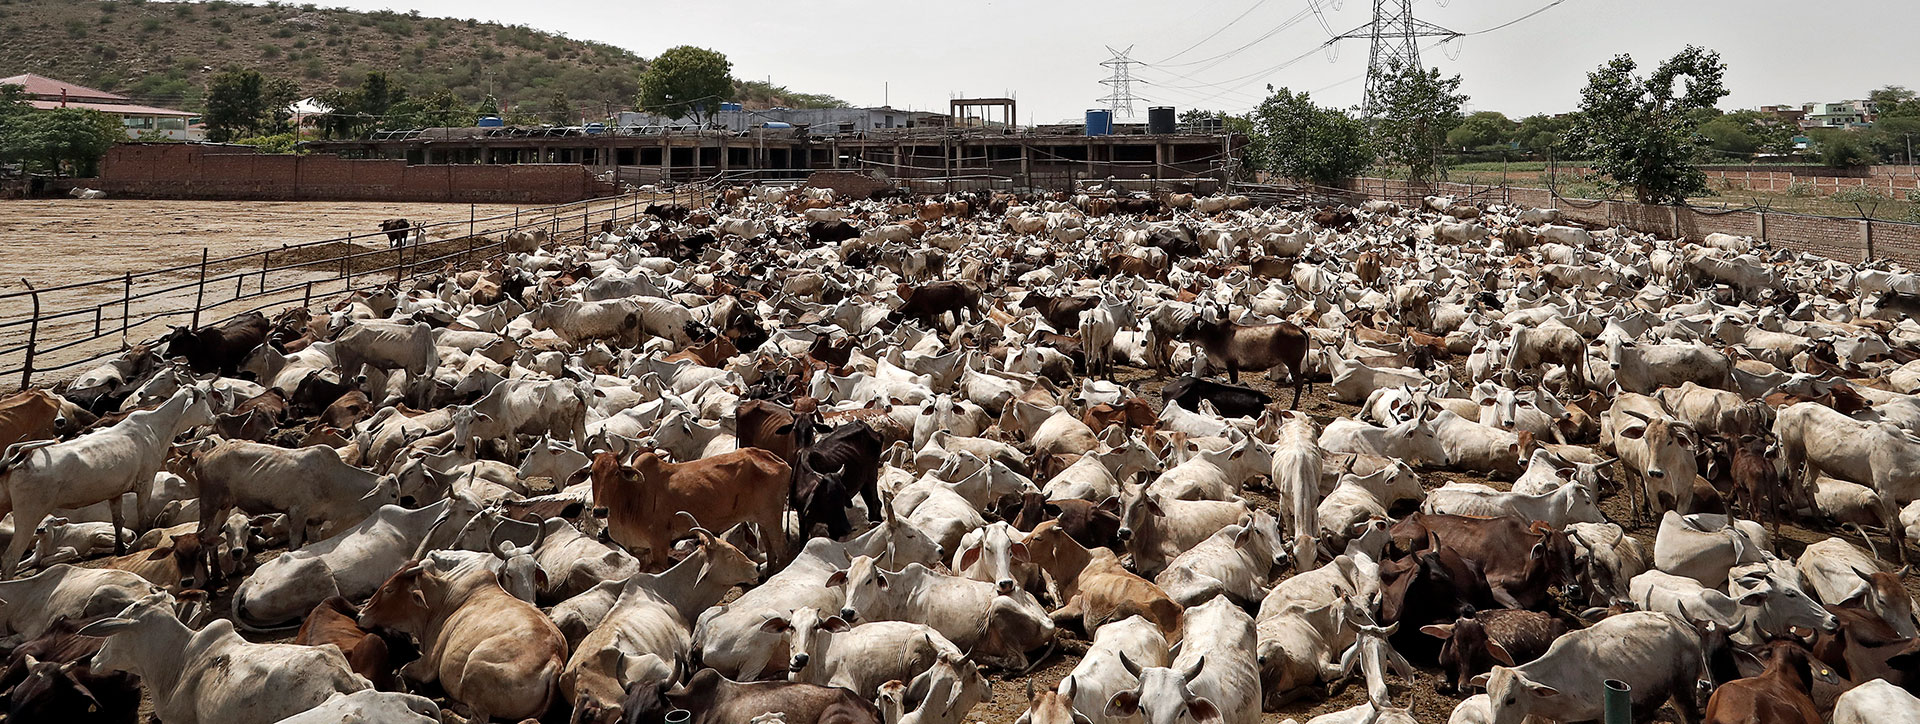 Cows are packed into a gaushala, or cattle shelter, in the town of Barsana that takes in cattle seized from Muslims by vigilantes in the Indian state of Uttar Pradesh. REUTERS/Cathal McNaughton